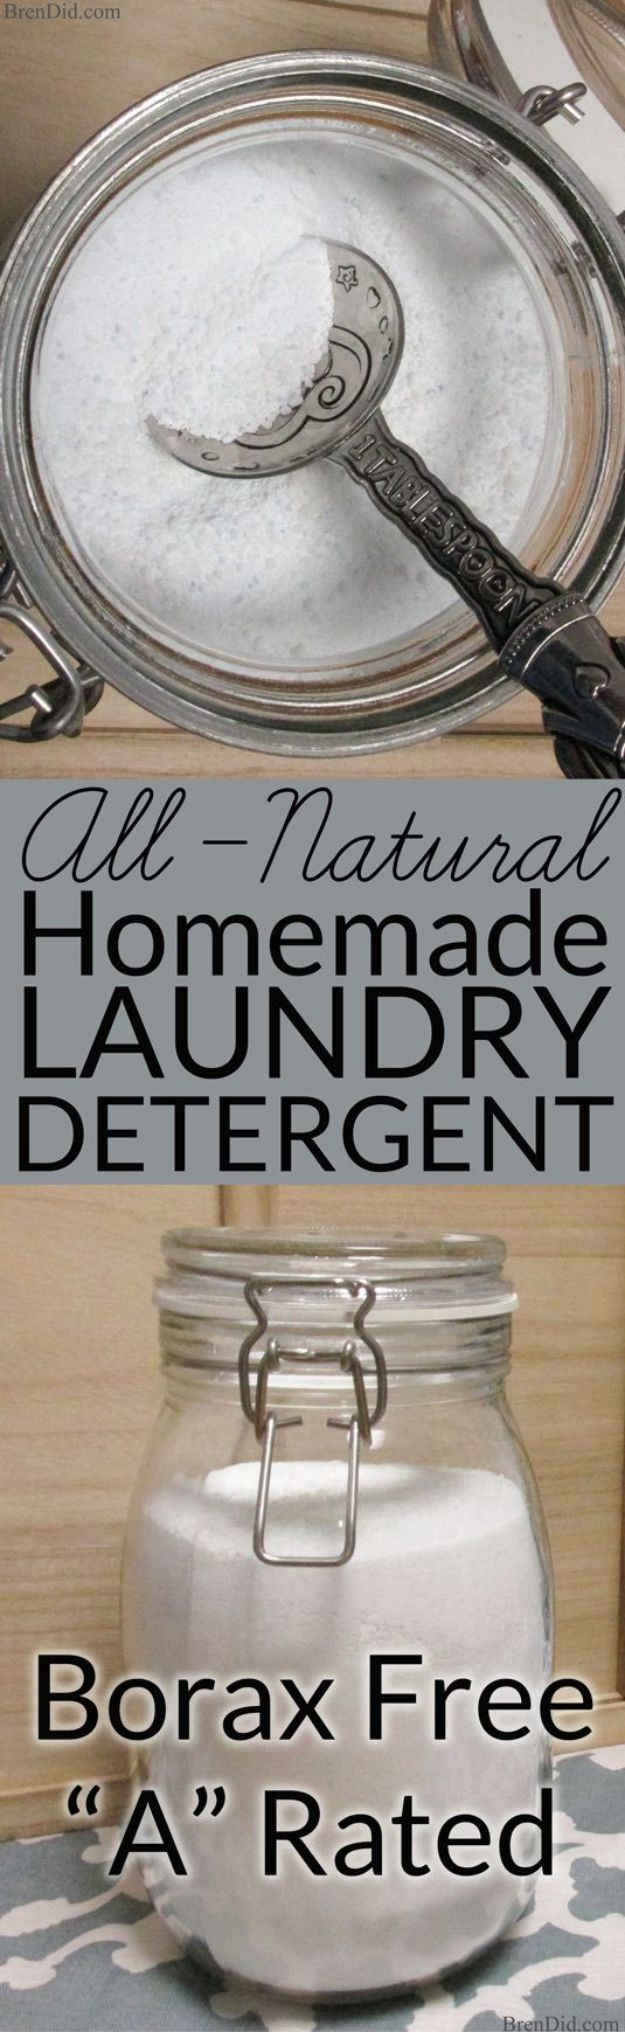 Laundry Detergent Recipes - Borax Free Natural Homemade Laundry Detergent - DIY Detergents and Cleaning Recipe Tutorials for Homemade Inexpensive Cleaners You Can Make At Home - Scented Powder and Liquid for He Washer - Save Money With These Cheap Ideas - Natural Products With Essential Oils - Baby, Sensitive Skin Detergent Free Ideas http://diyjoy.com/diy-laundry-detergent-recipes